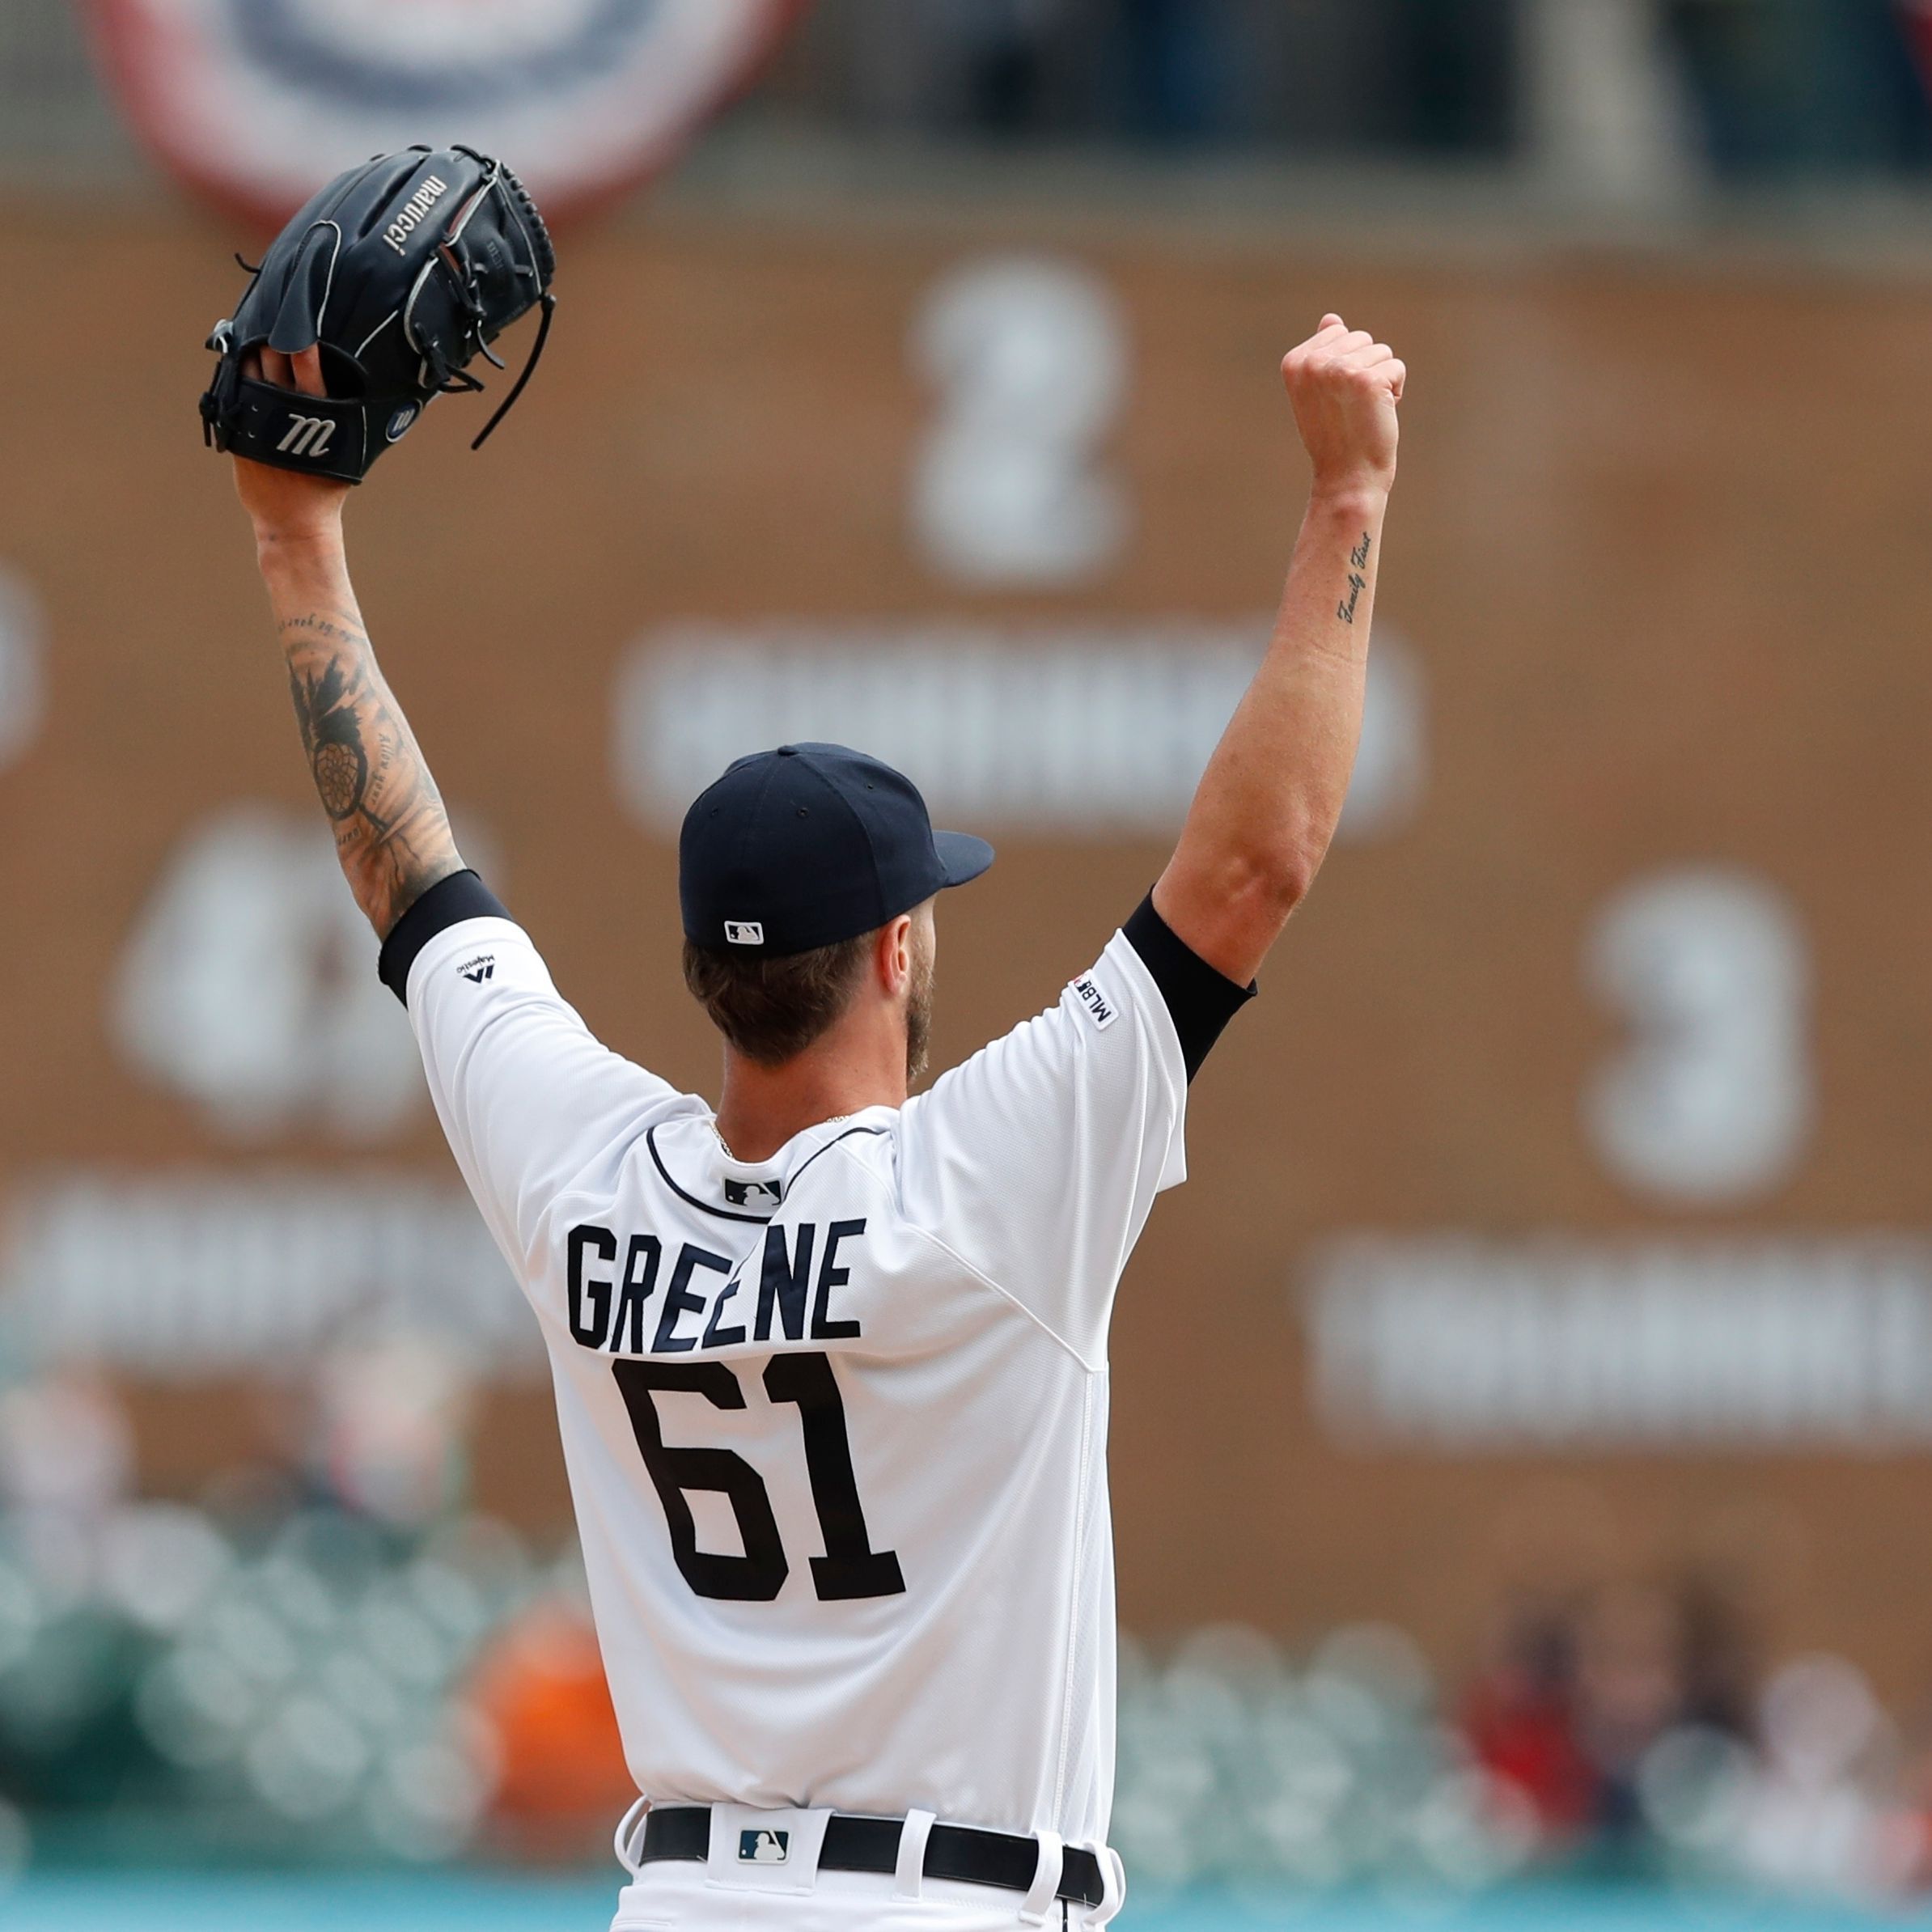 Talkin' Tigers: Looking at the hot start, and farm system